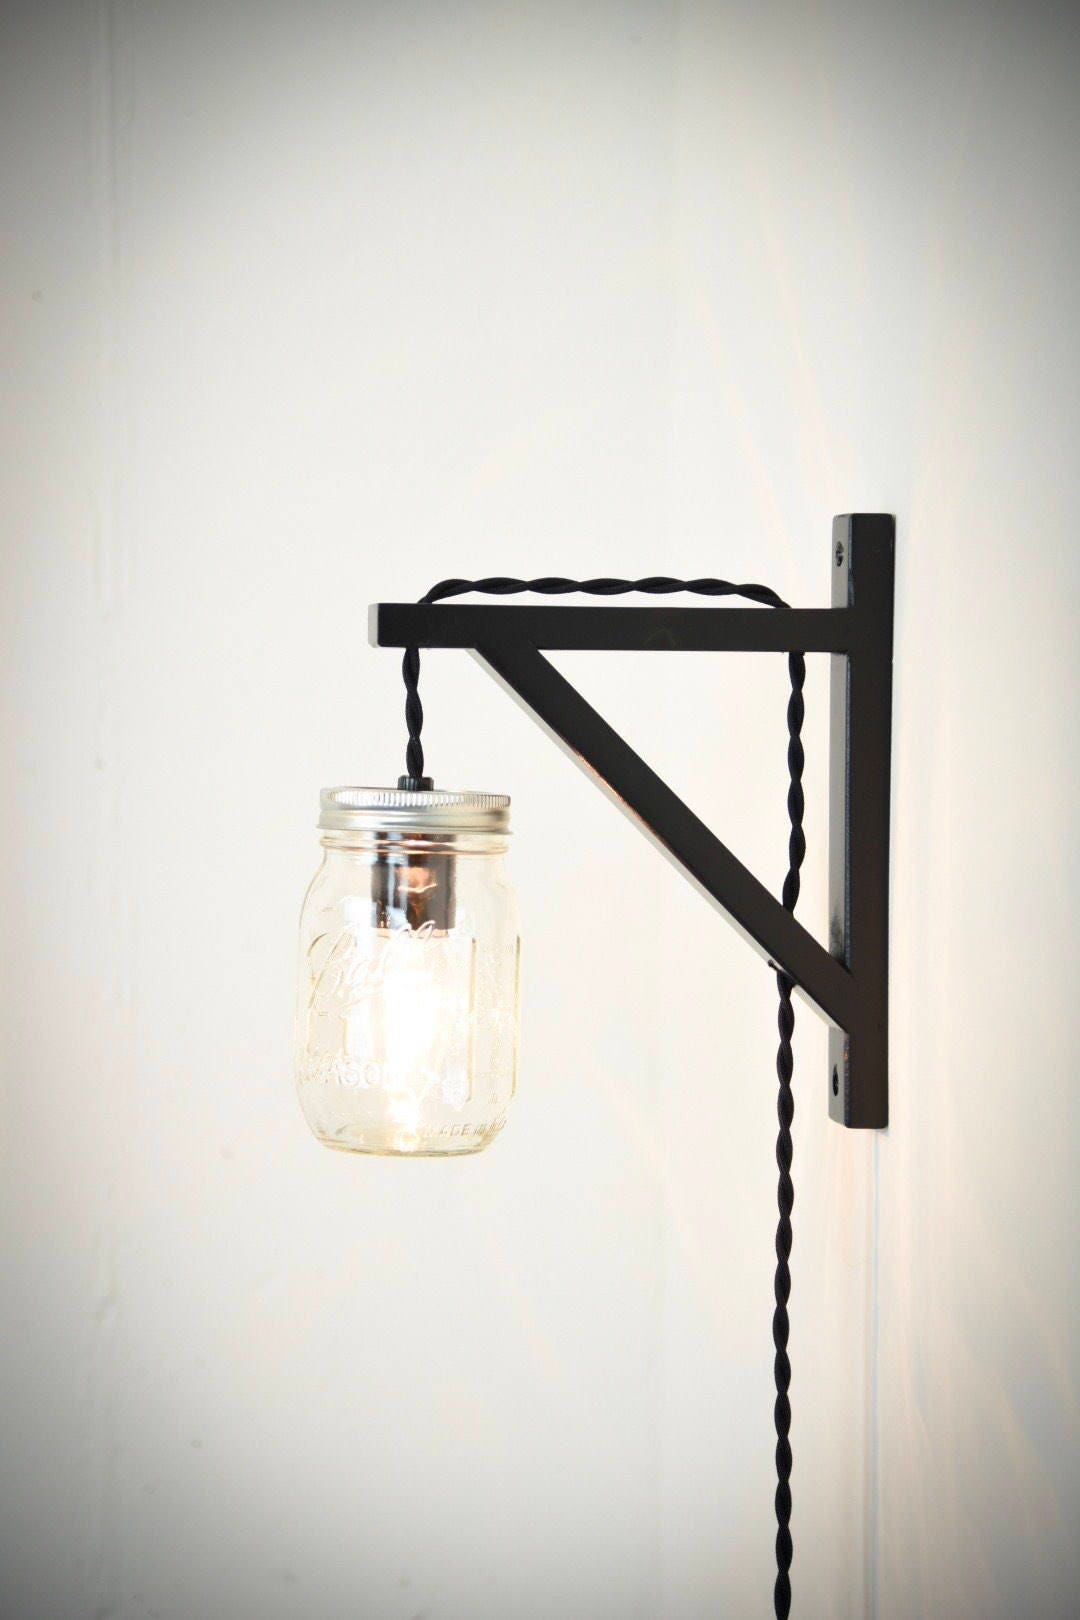 Mason jar wall sconce plug in wall sconce wall light black mason jar wall sconce plug in wall sconce wall light black wall lamp plug in light rustic lighting mason jar plug in light aloadofball Image collections